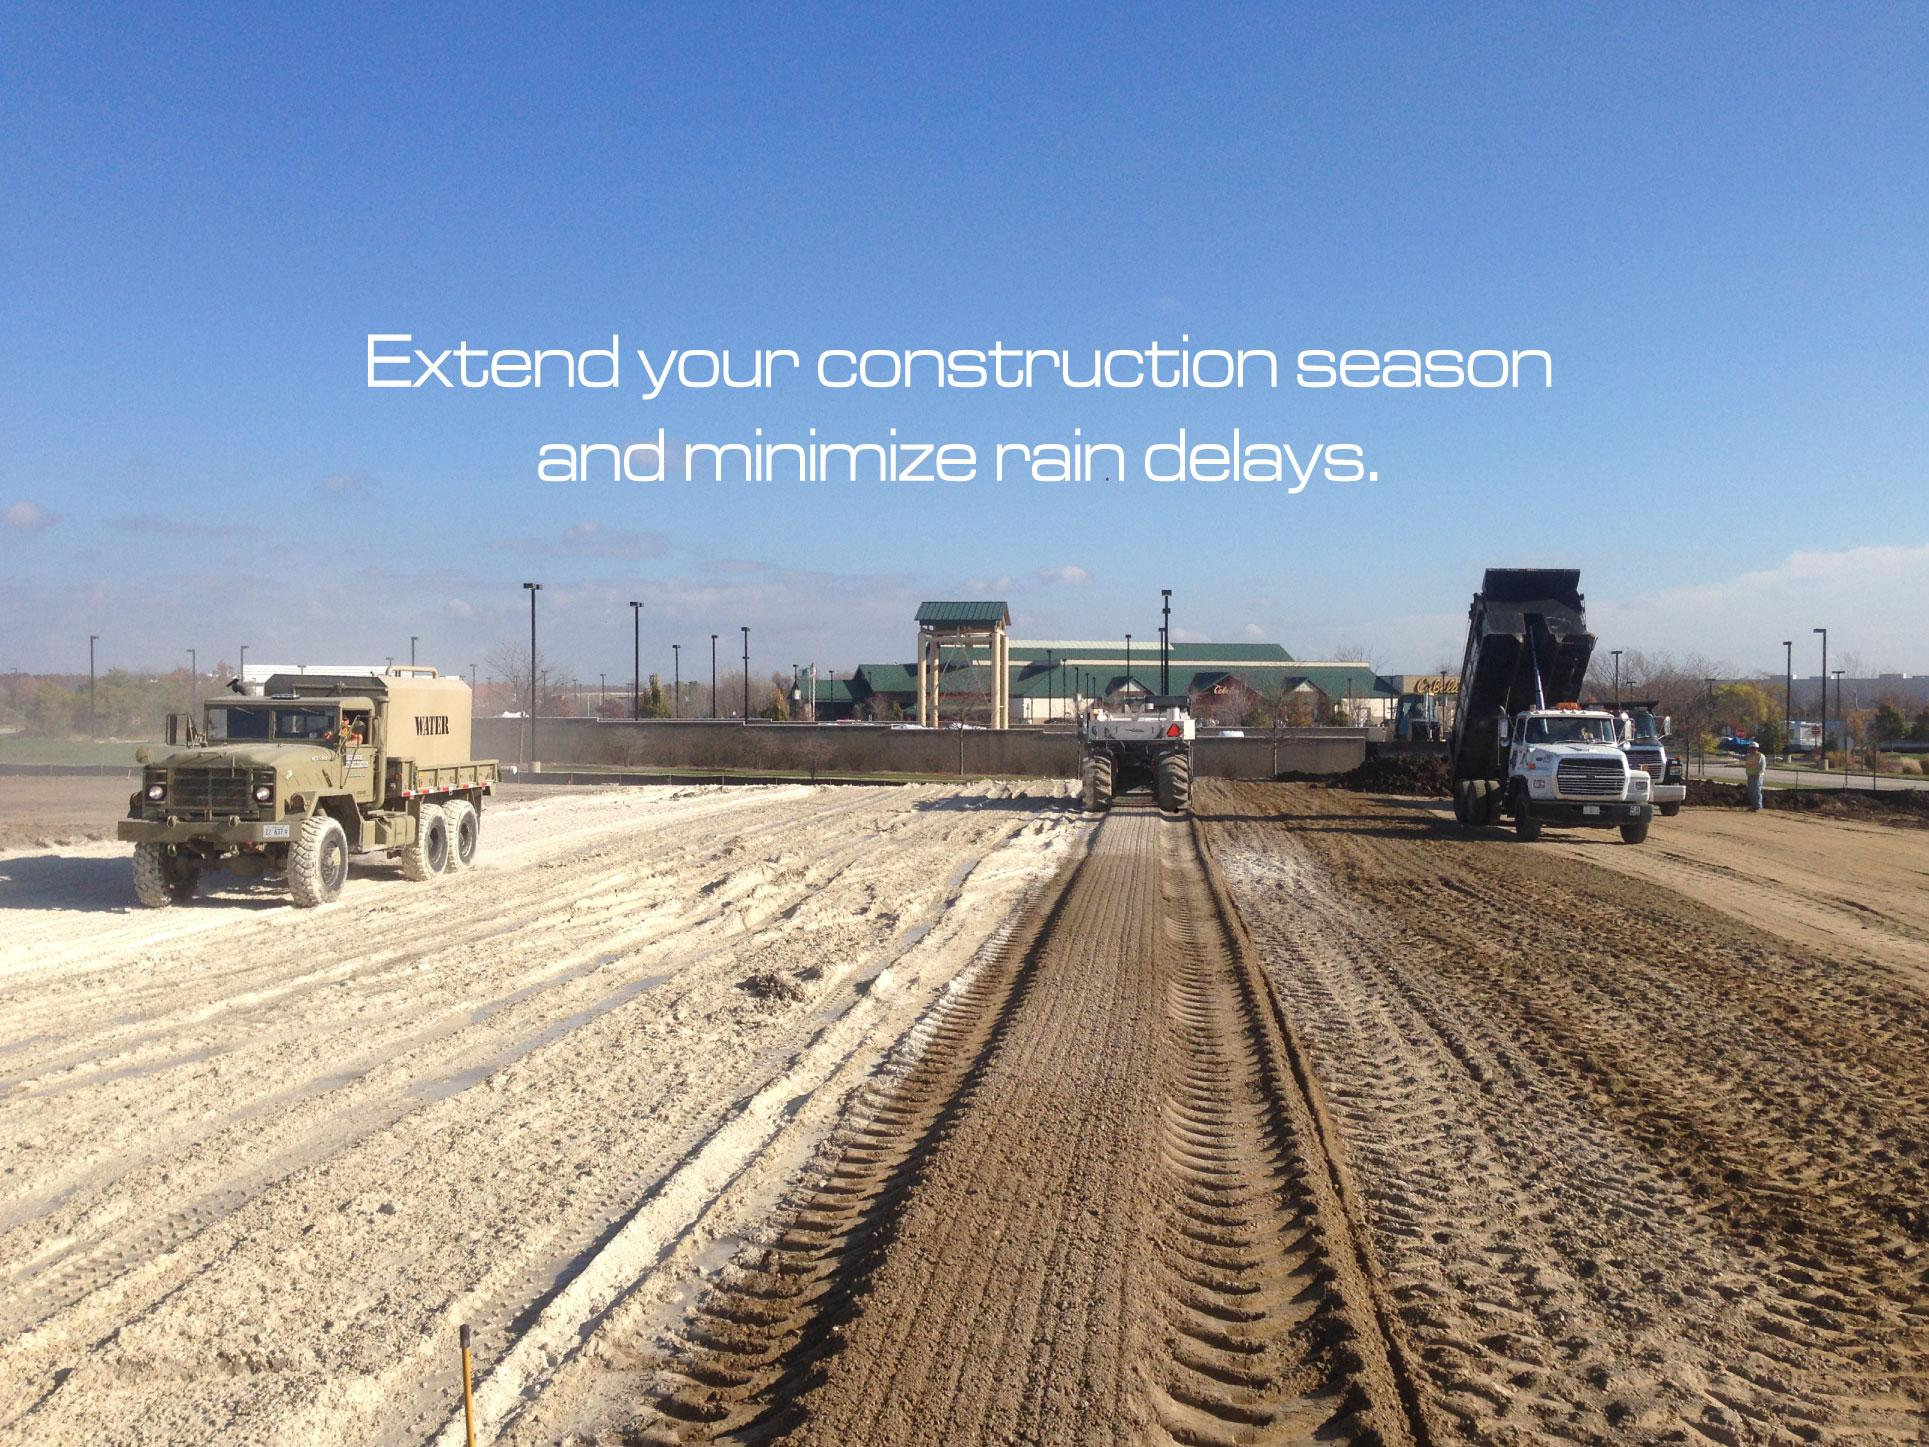 Extend your construction season